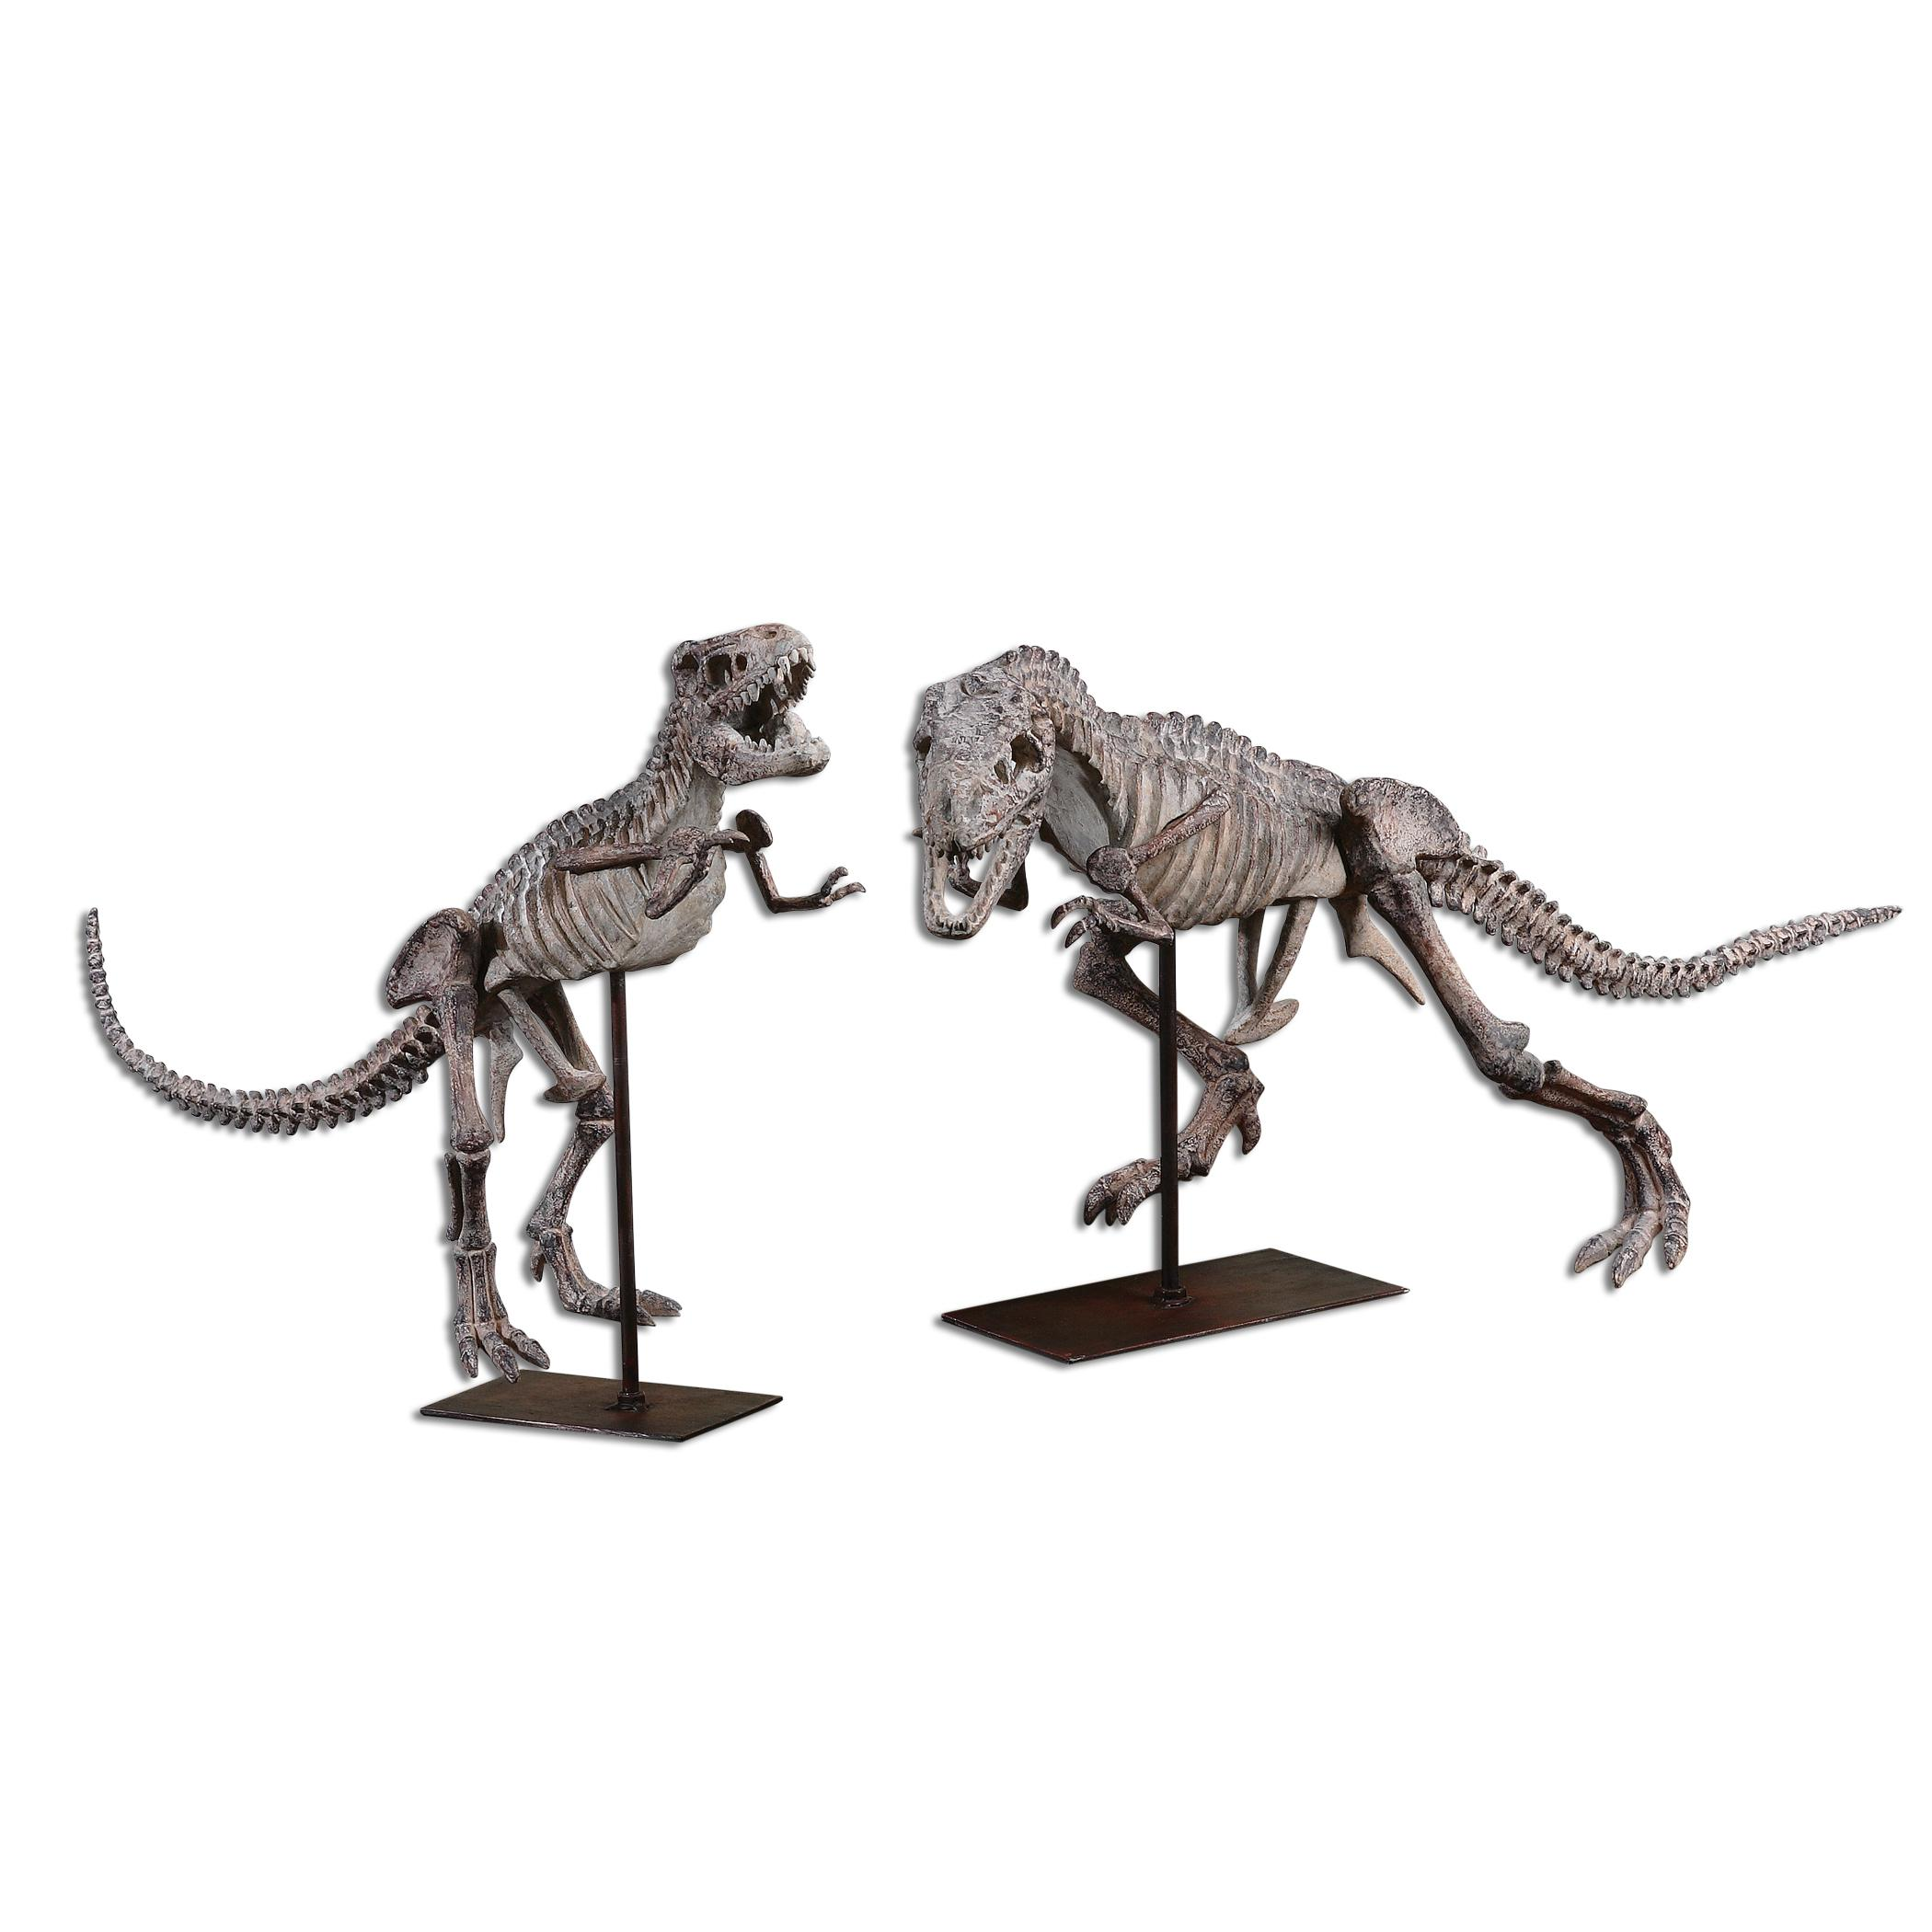 Uttermost Accessories T-Rex Sculptures, Set of  2 - Item Number: 19854